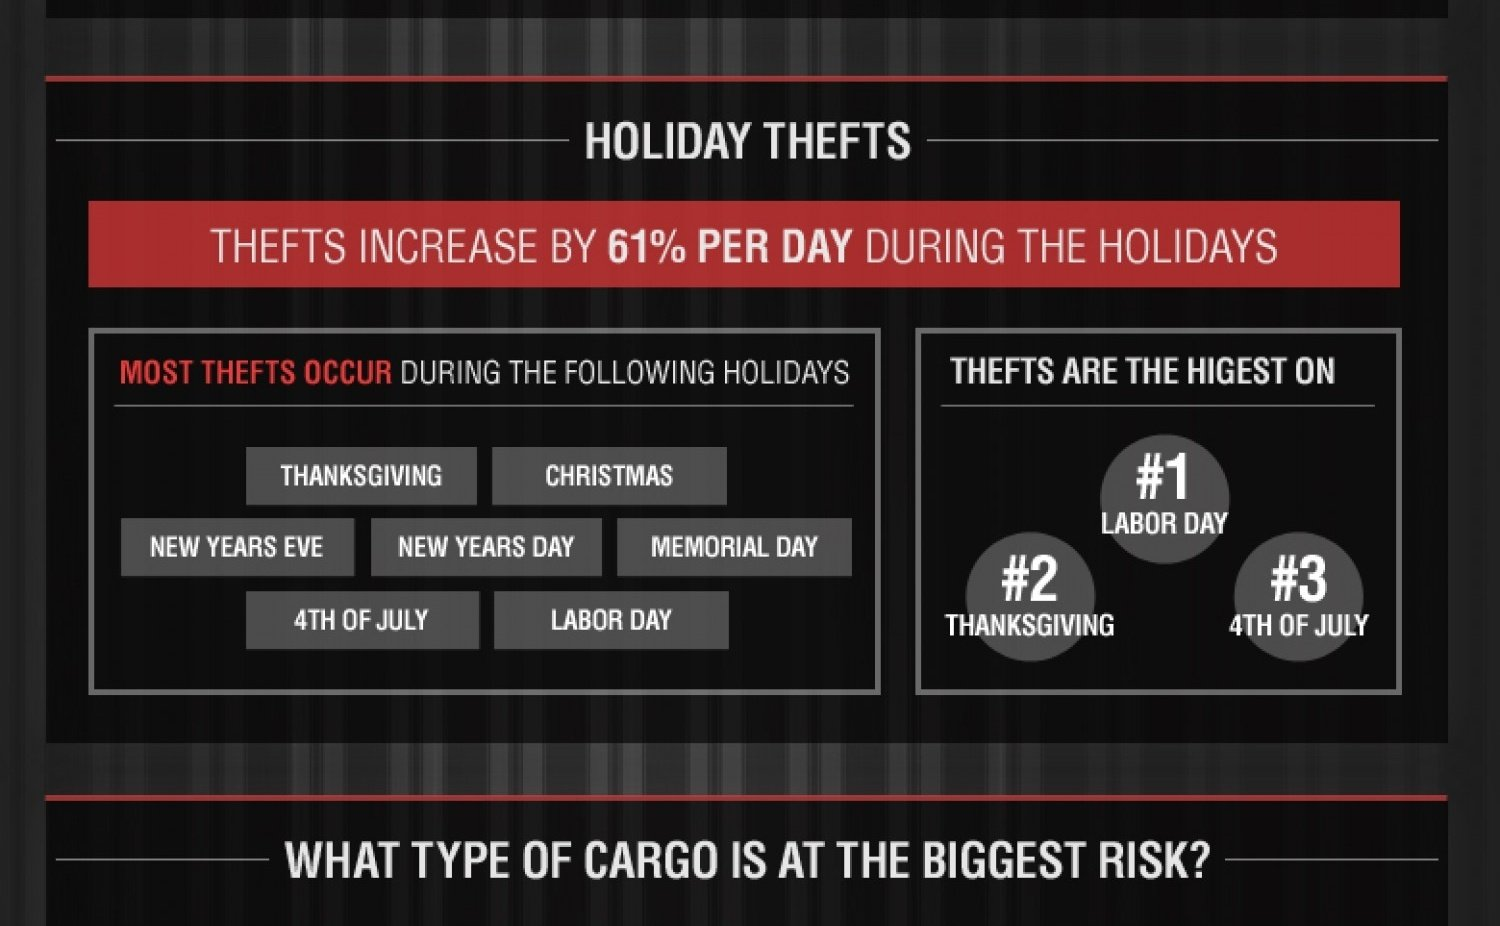 Holiday Cargo Theft Image — Credit: Owner Operator Direct